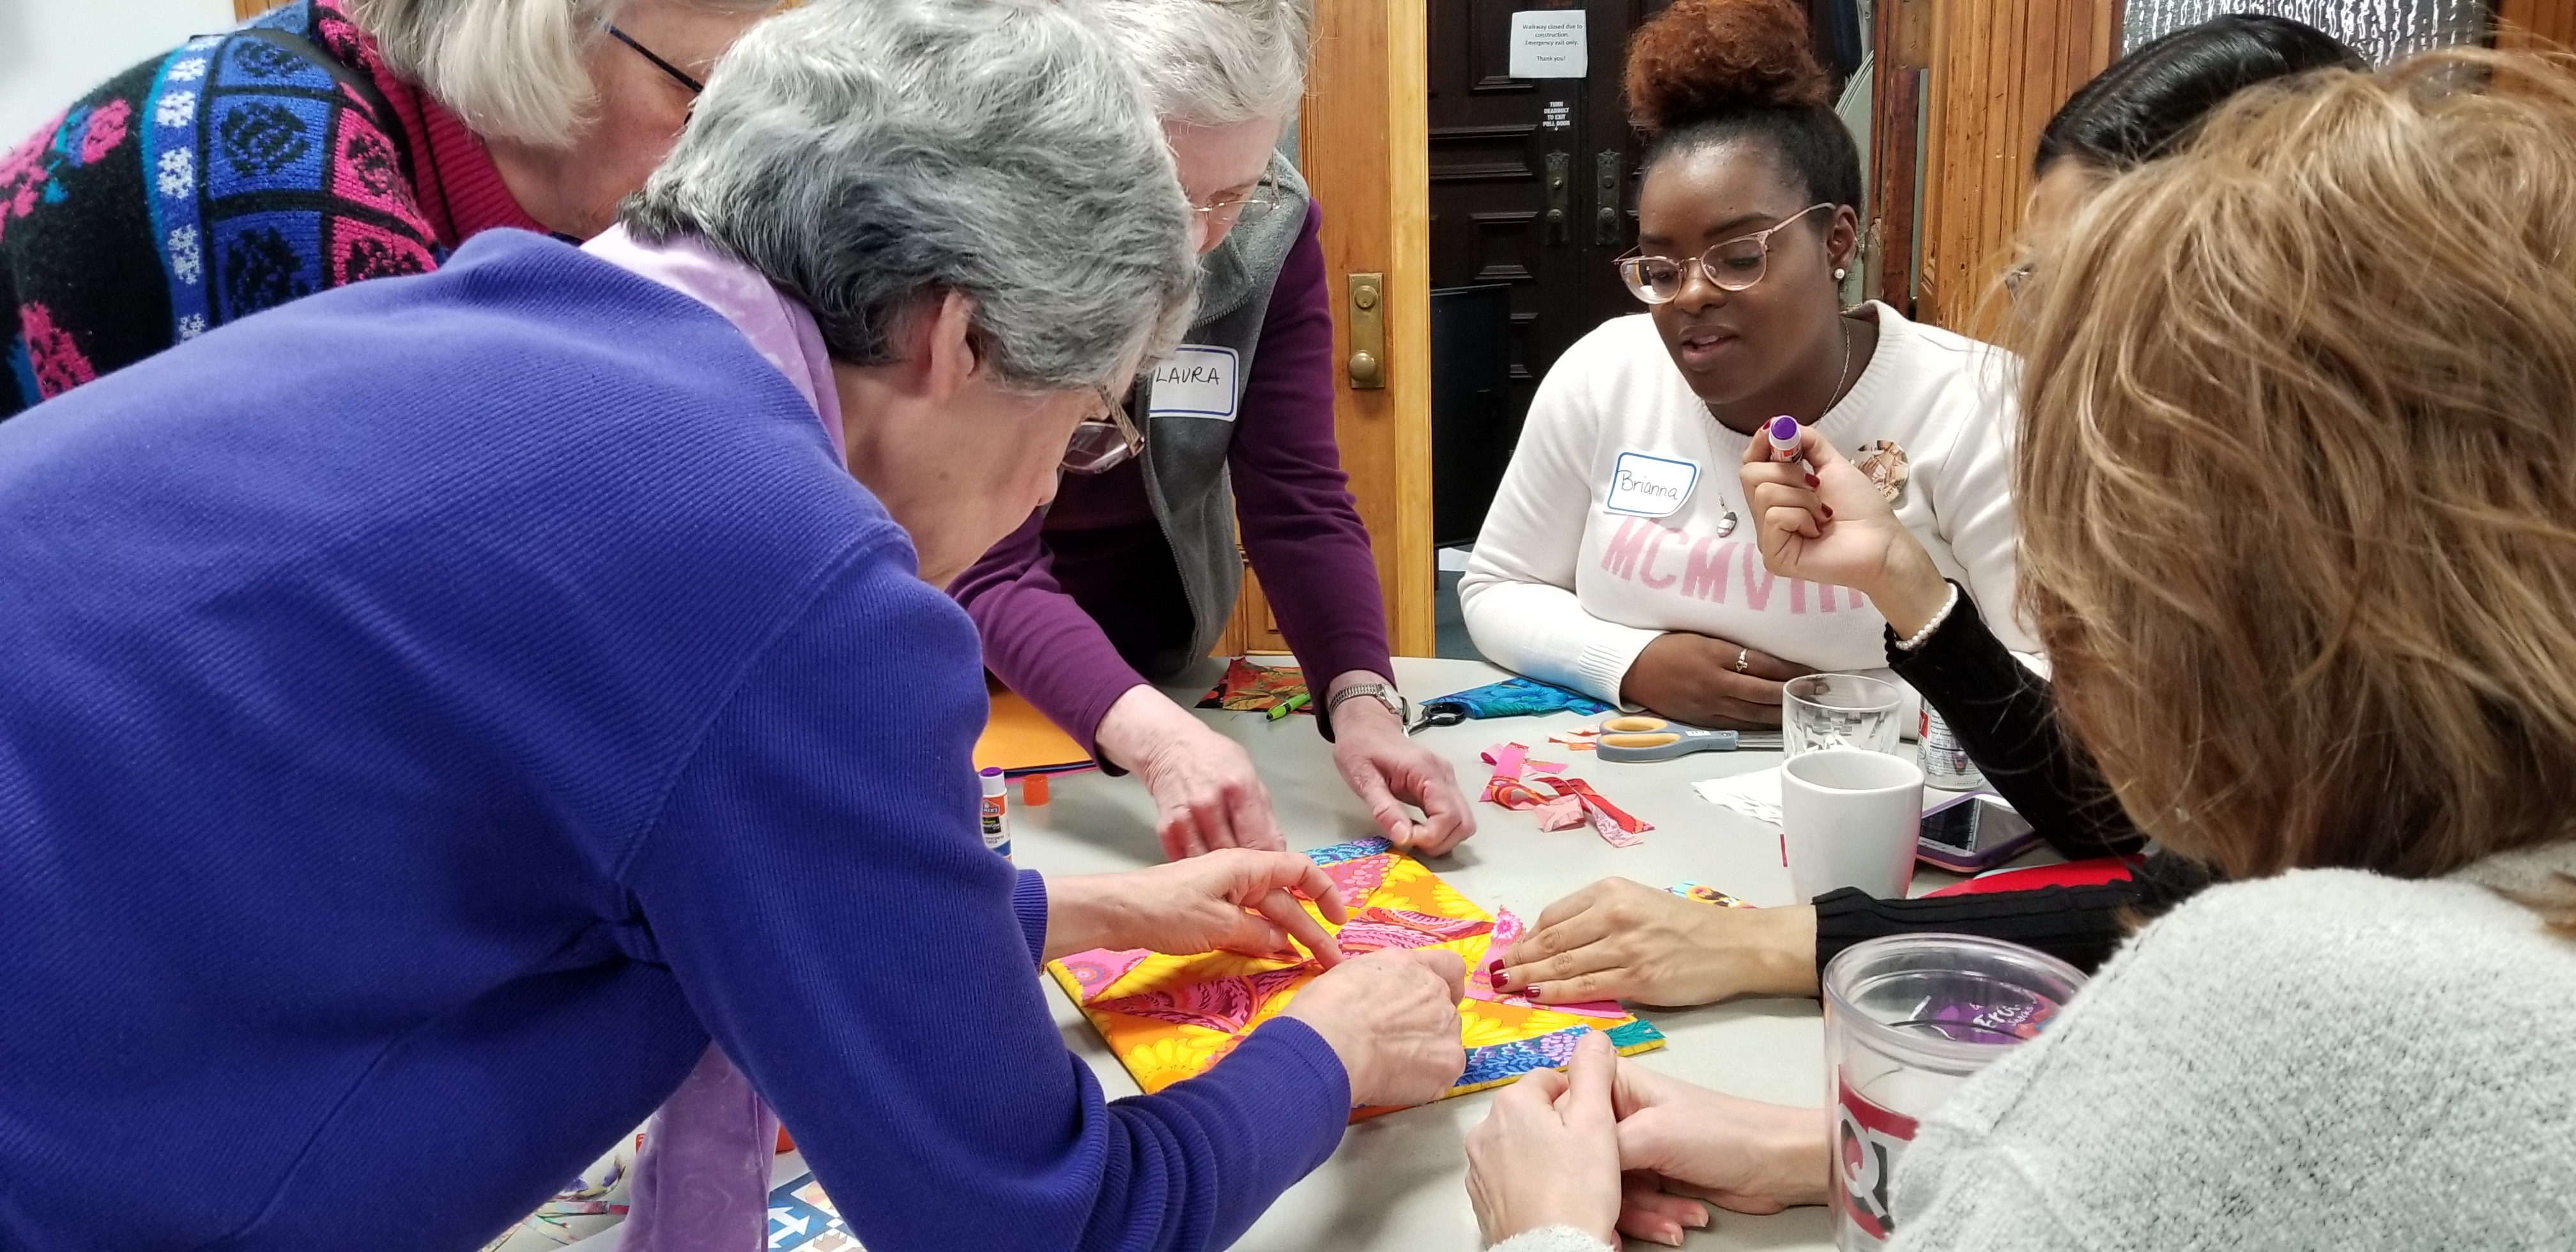 Participants made their own quilt squares at the workshop.